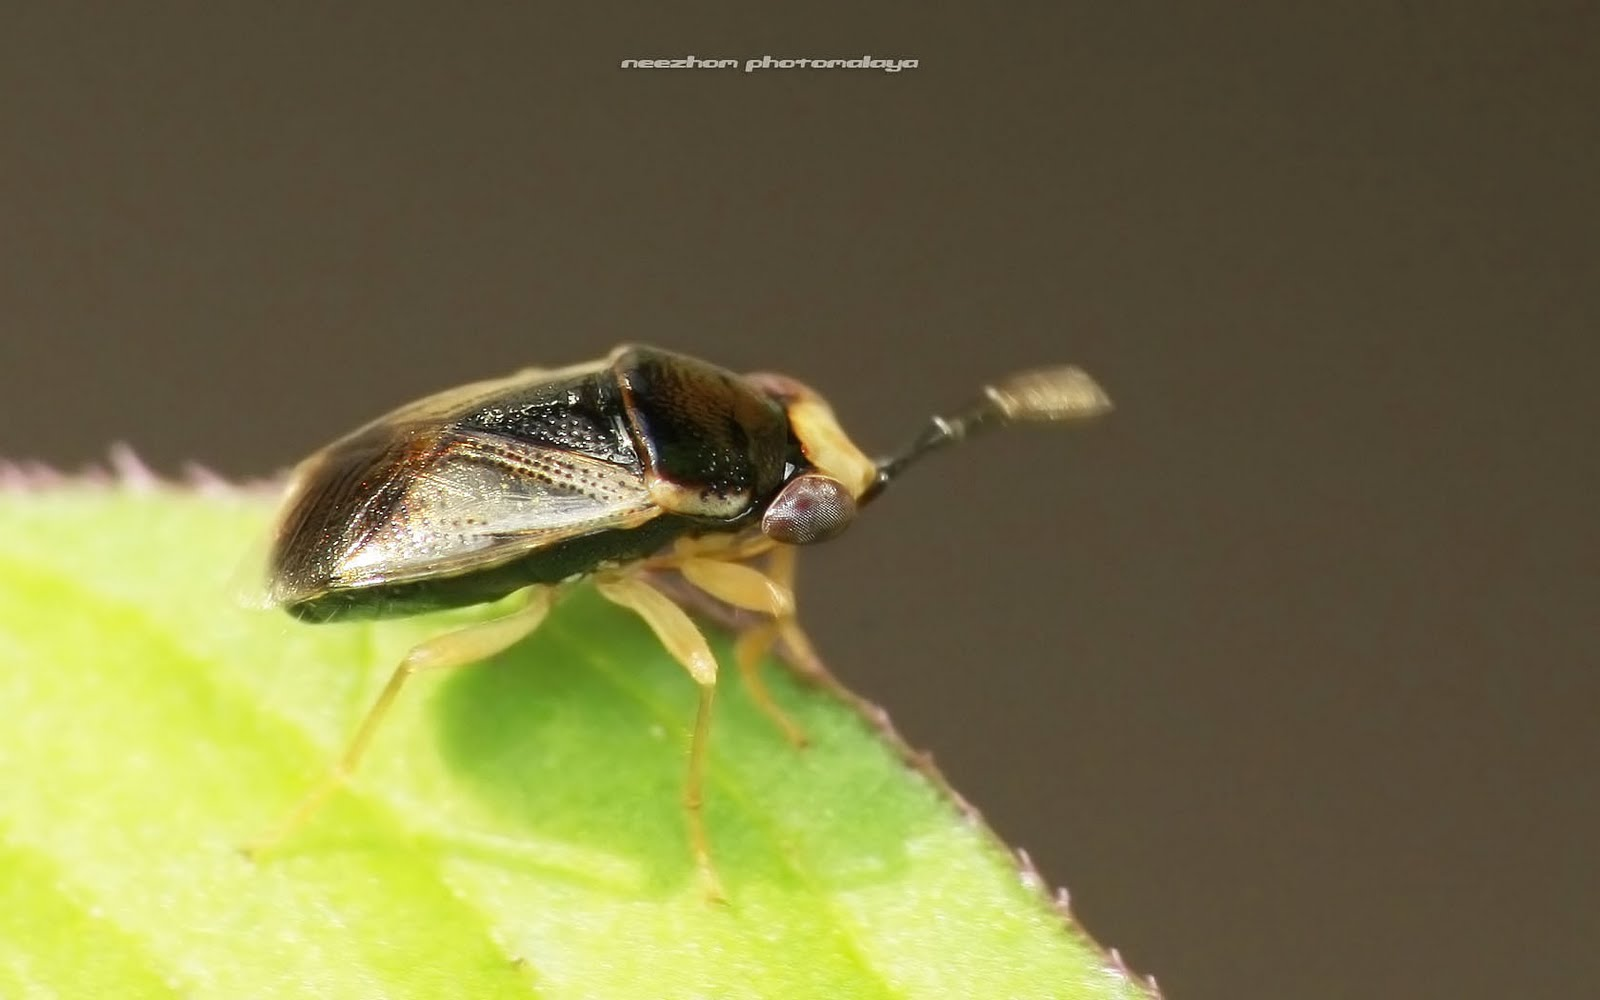 dark brown and beige planthopper